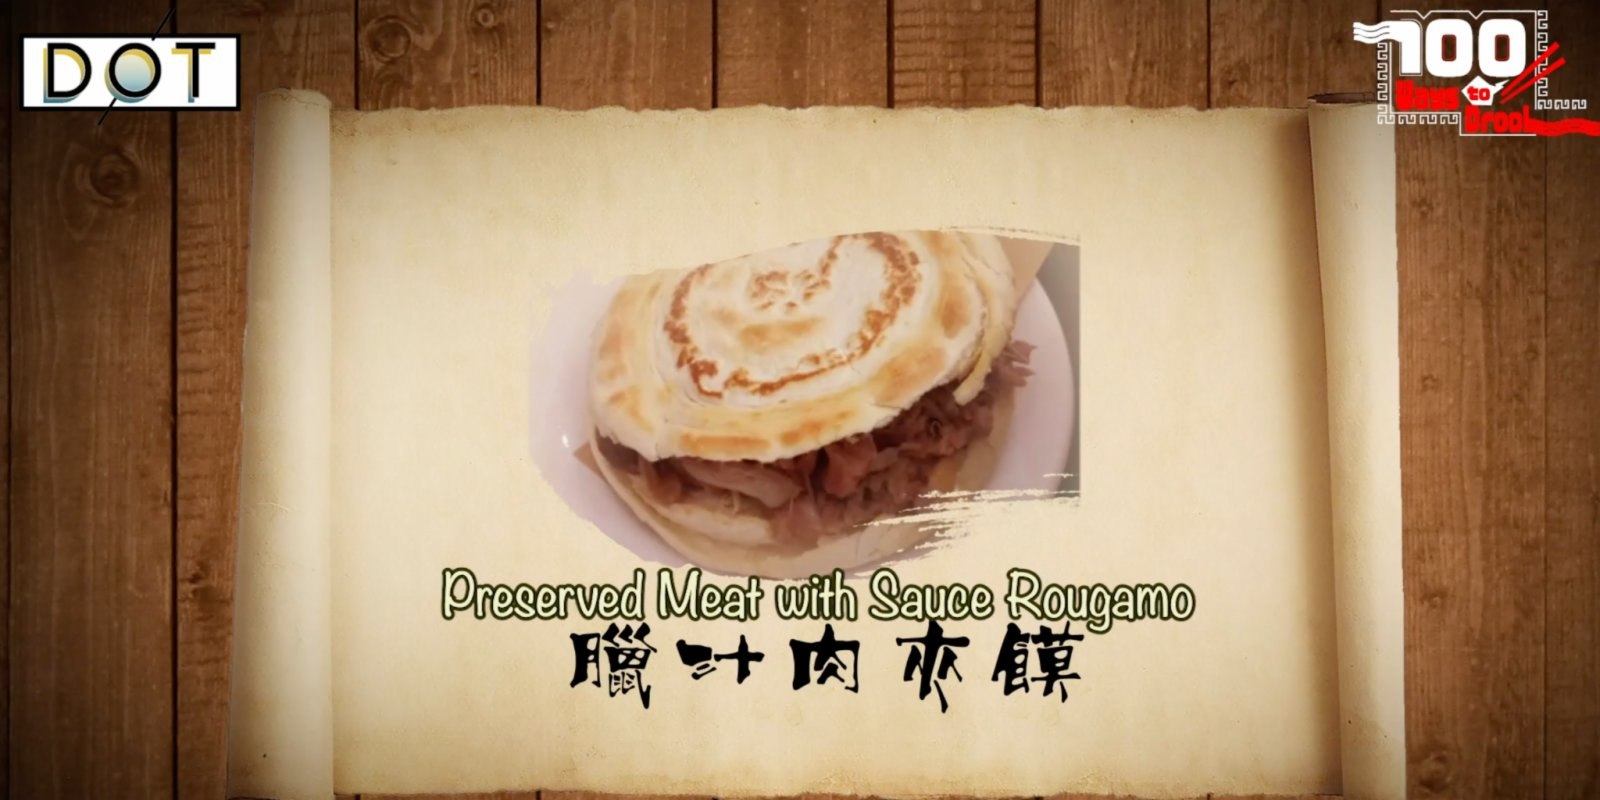 100 Ways To Drool | Traditional Shaanxi Rougamo: One bite full of aroma